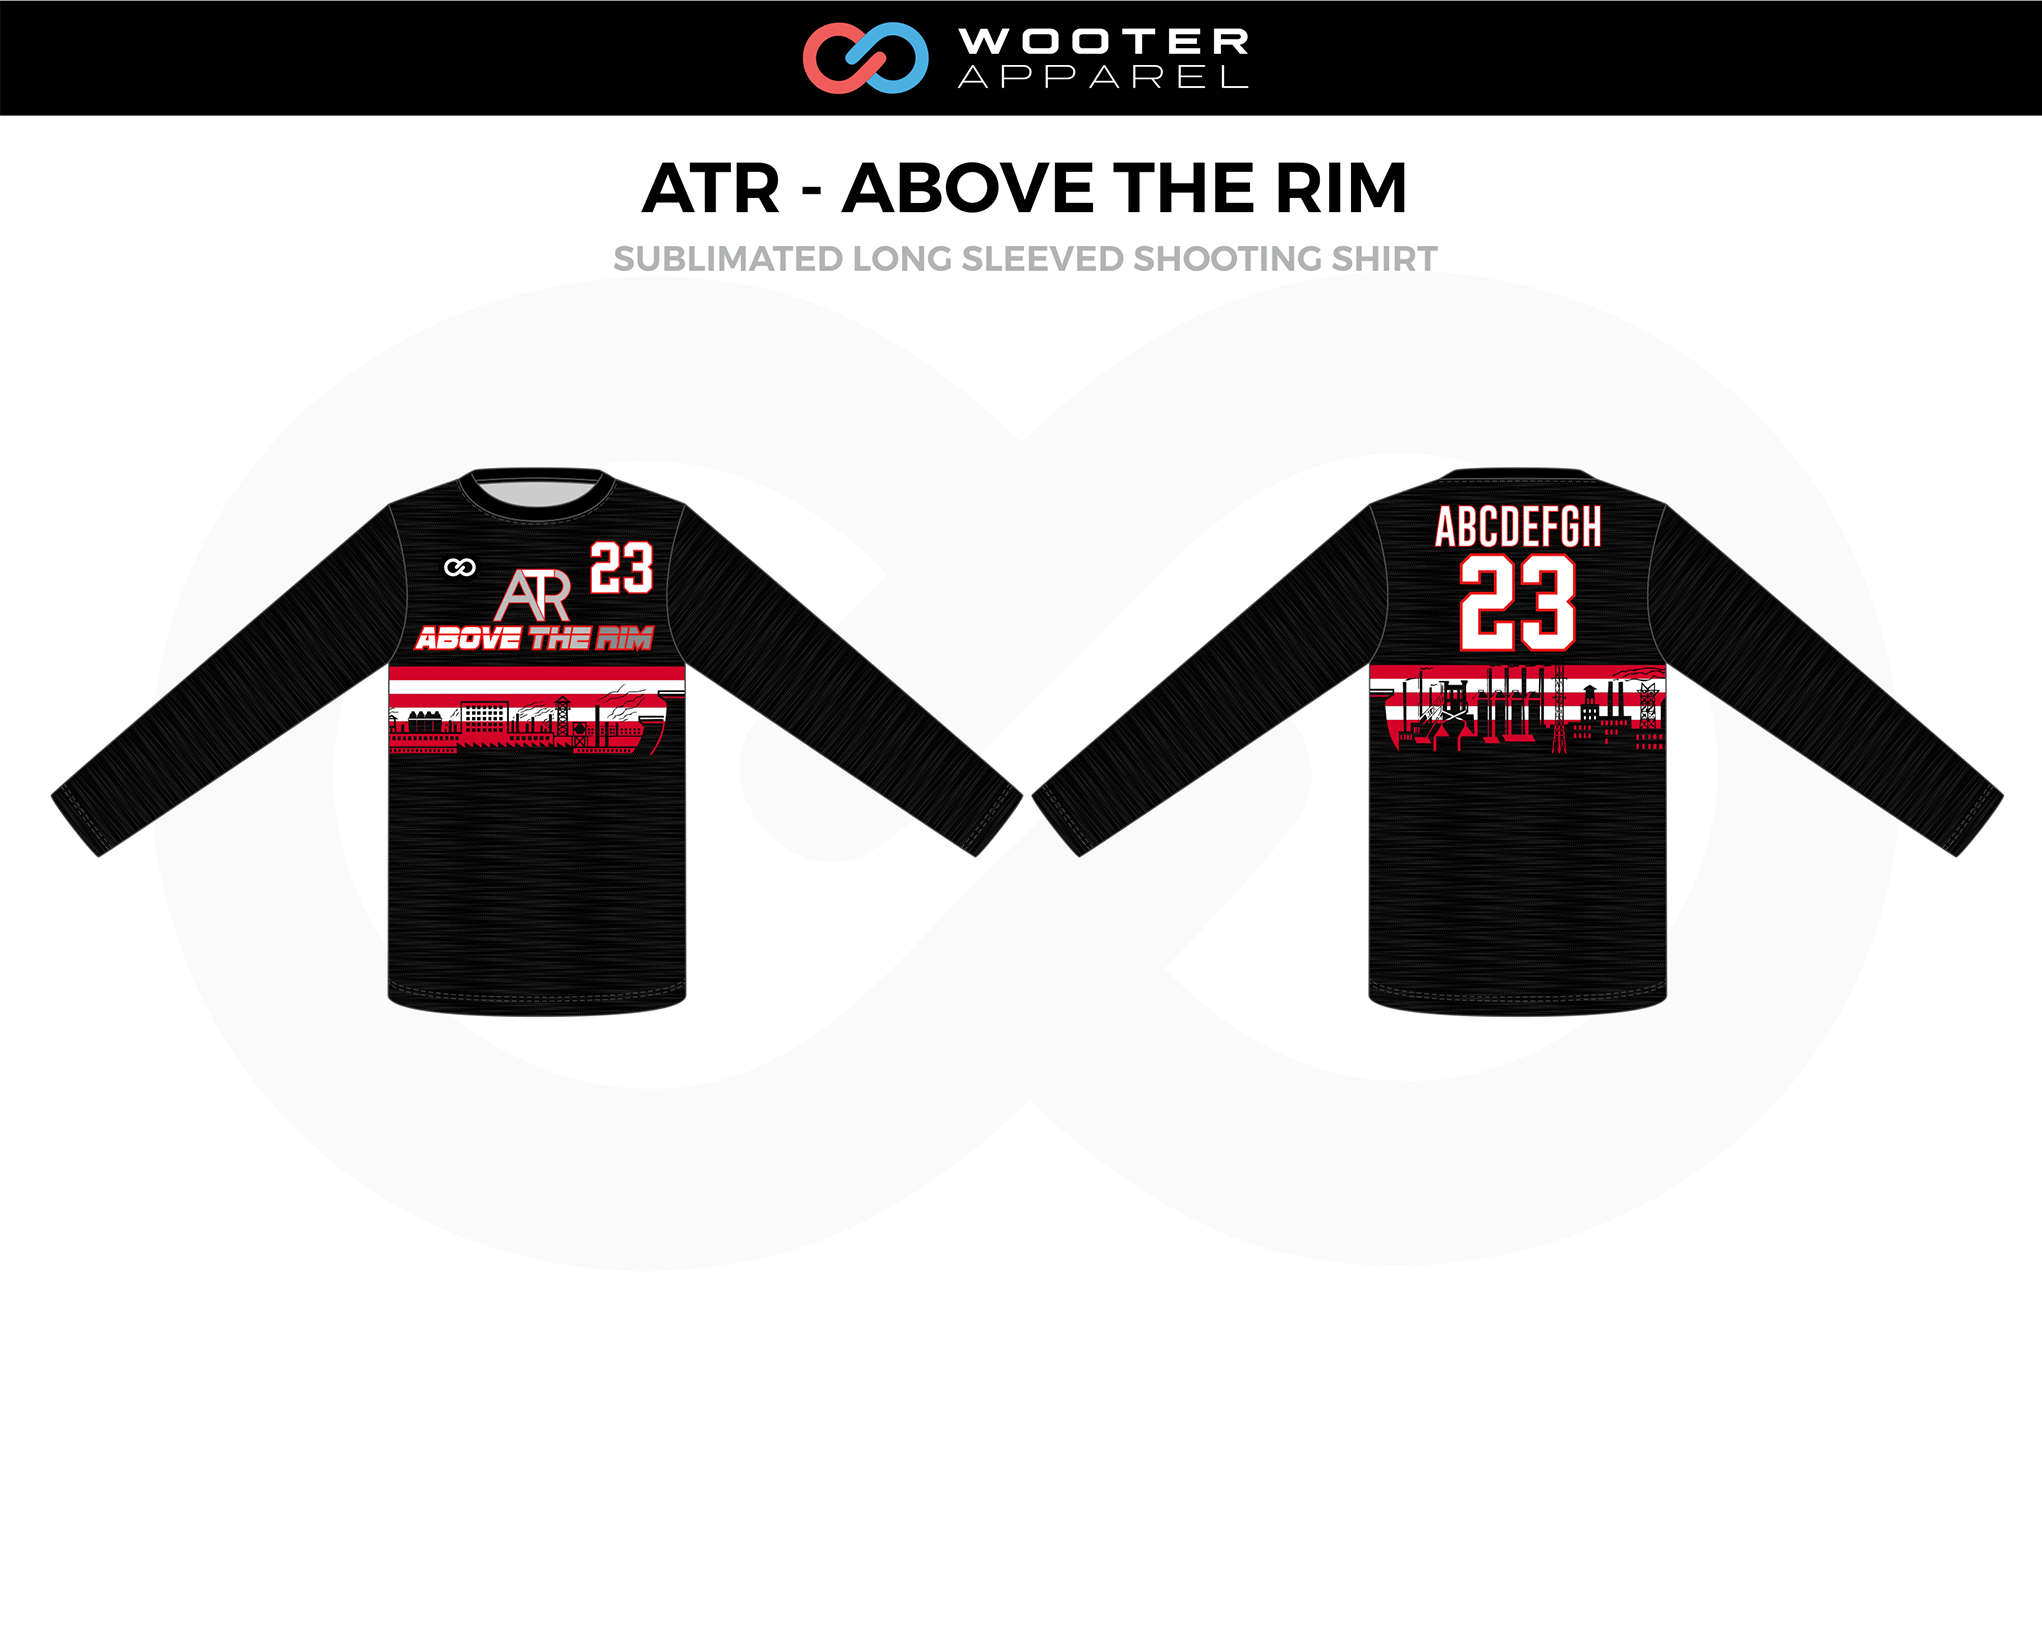 ATR-ABOVE THE RIM Black Red White Long Sleeved Shooting Shirt